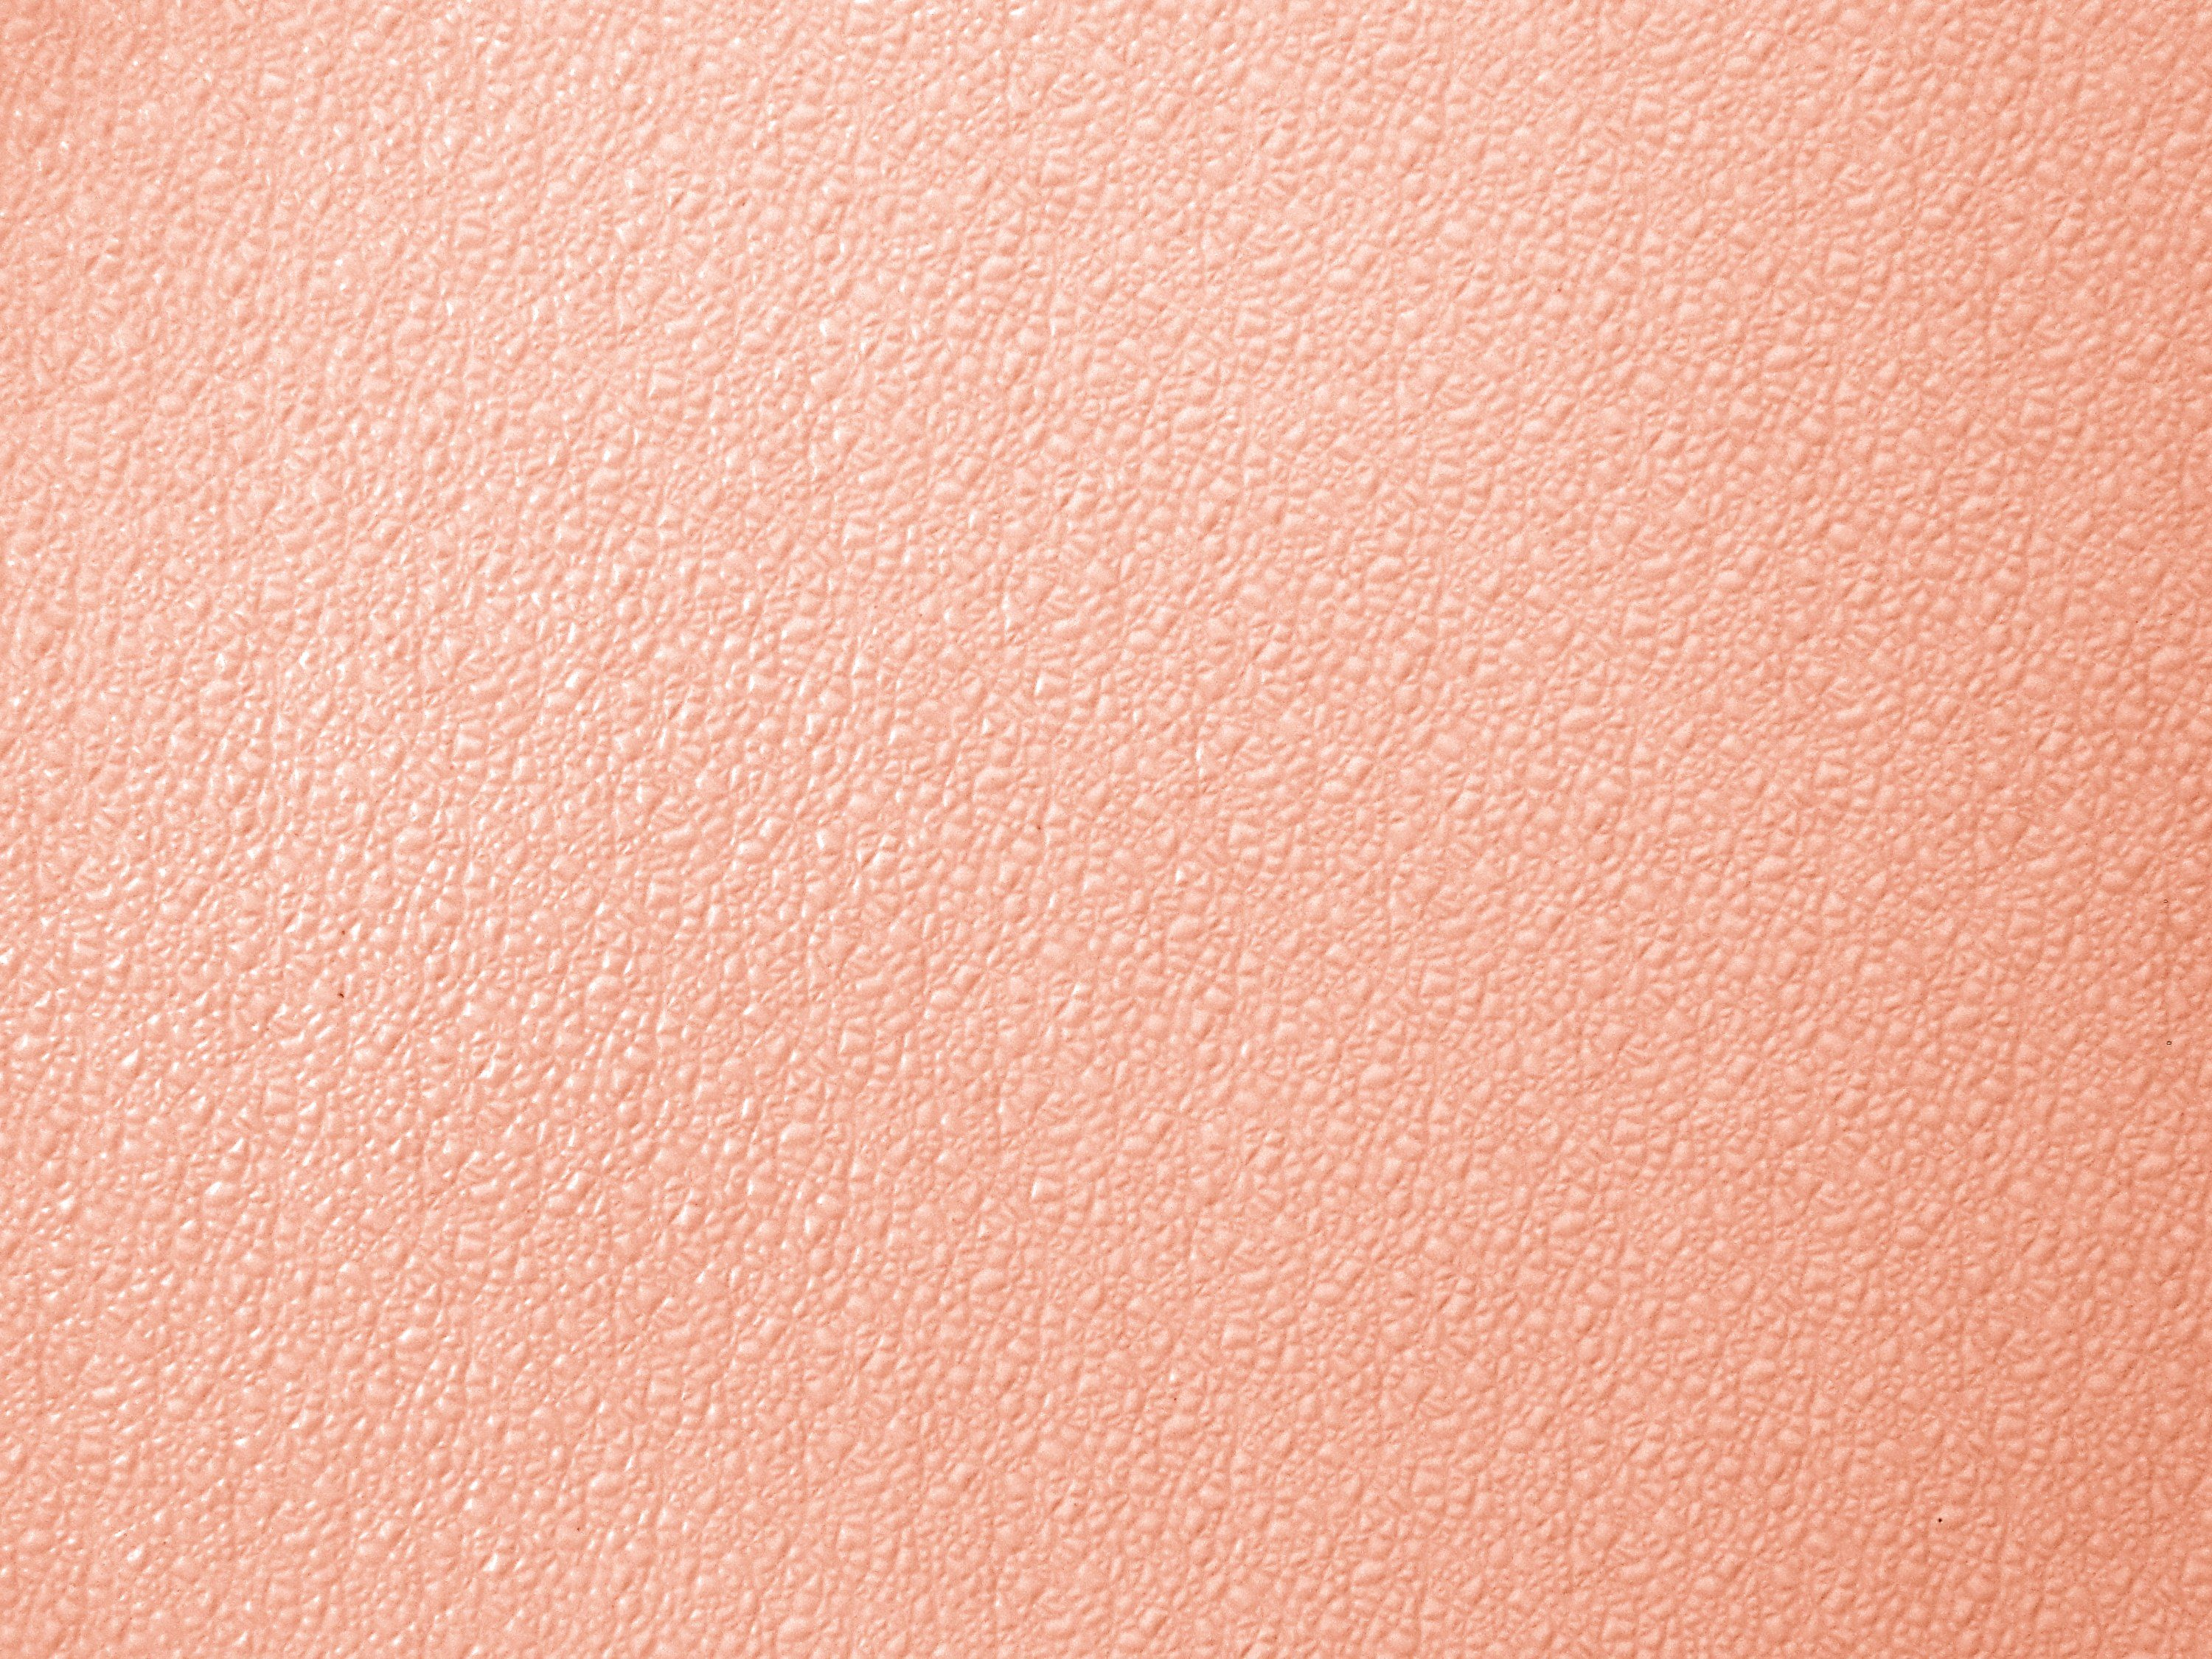 peach color wallpaper  Peach Color Wallpaper - WallpaperSafari | 4/26 | Pinterest | Peach ...